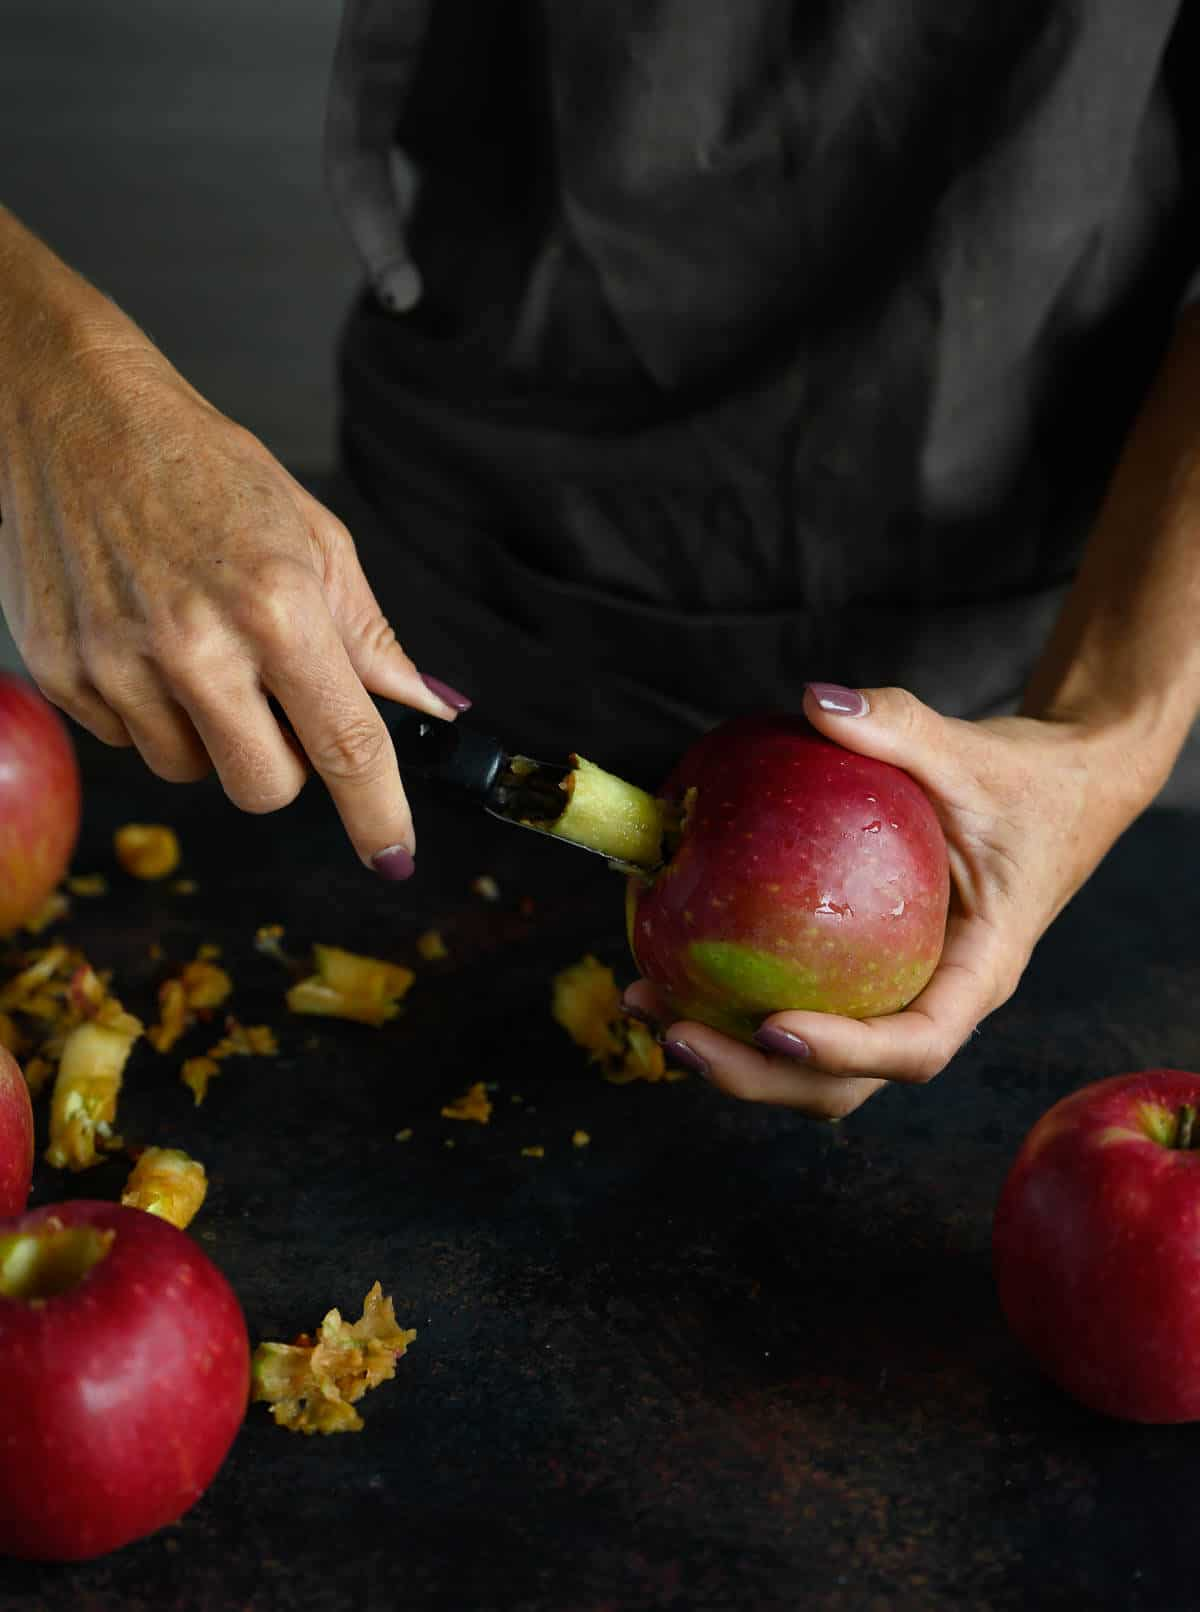 woman using an apple corer to remove the core of a whole apple